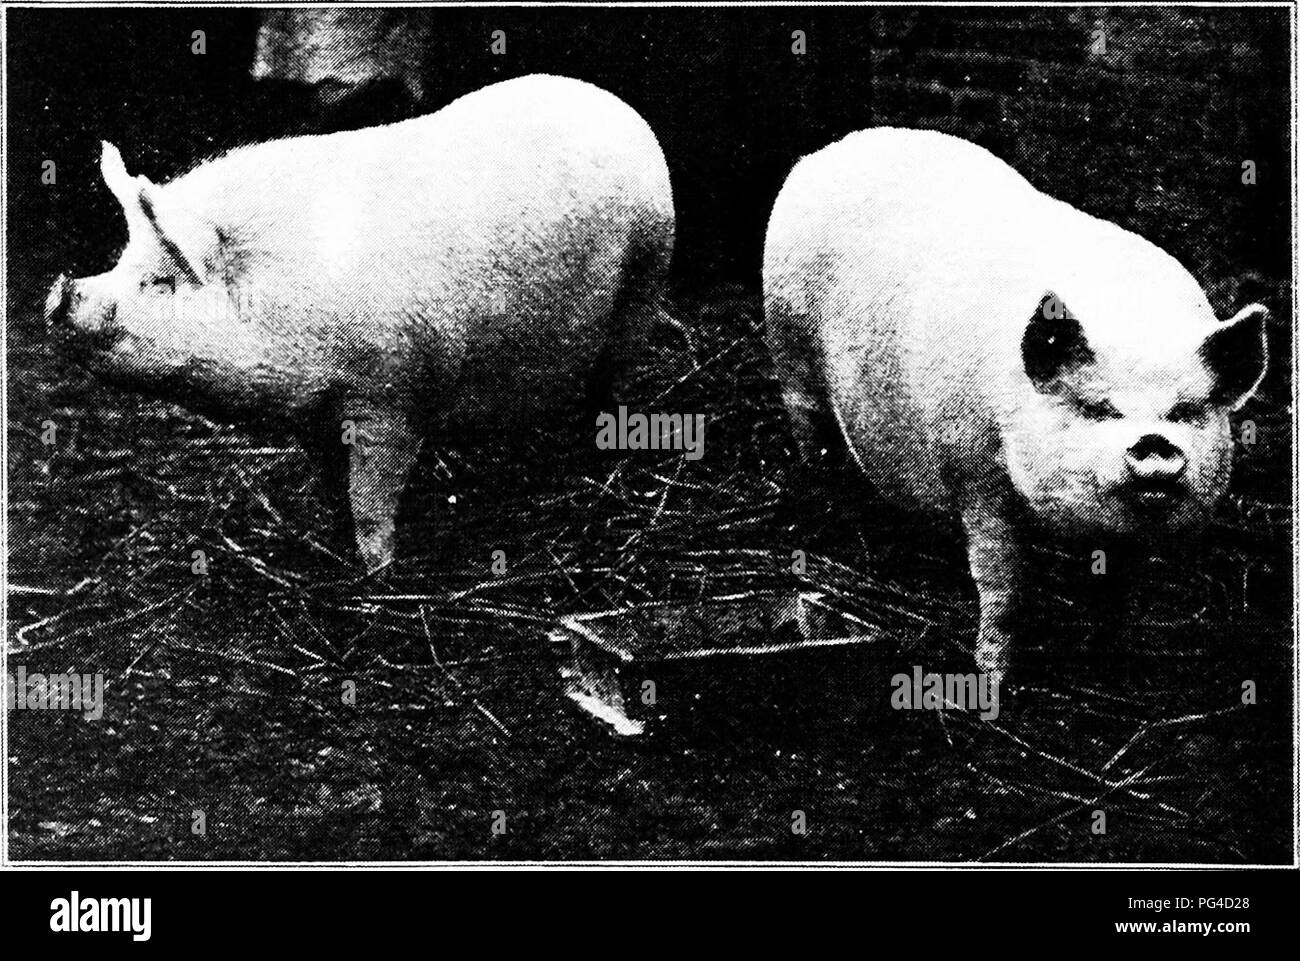 """. Swine : a book for students and farmers . Swine. """"Choice bacon,"""" as classified by Chicago packers. These hogs are not used for Wiltshire sides. They are simply light hogs of the fat or lard type, as the illustration very clearly shows. They help to supply a growing demand for leaner meat. (Courtesy Illinois Agricultural Experiment Station.). Pair of Middle White Barrows; prize winners at the Smithfield Show, England.. Please note that these images are extracted from scanned page images that may have been digitally enhanced for readability - coloration and appearance of these illust - Stock Image"""